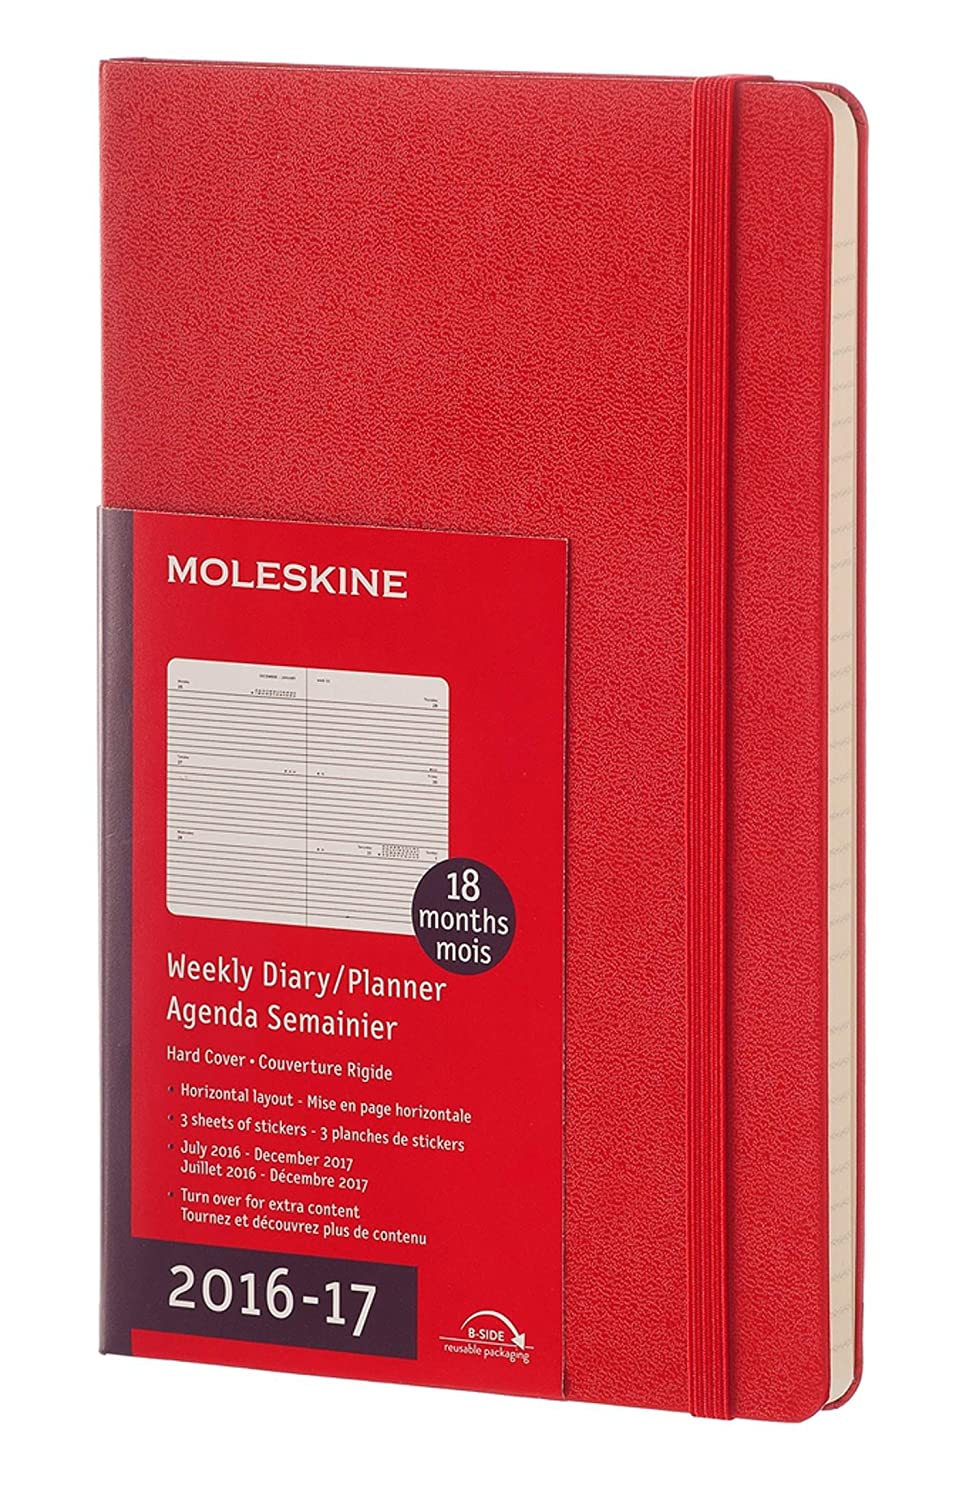 Moleskine 2016-2017 Weekly Planner, Horizontal, 18M, Large, Scarlet Red, Hard Cover (5 x 8.25)